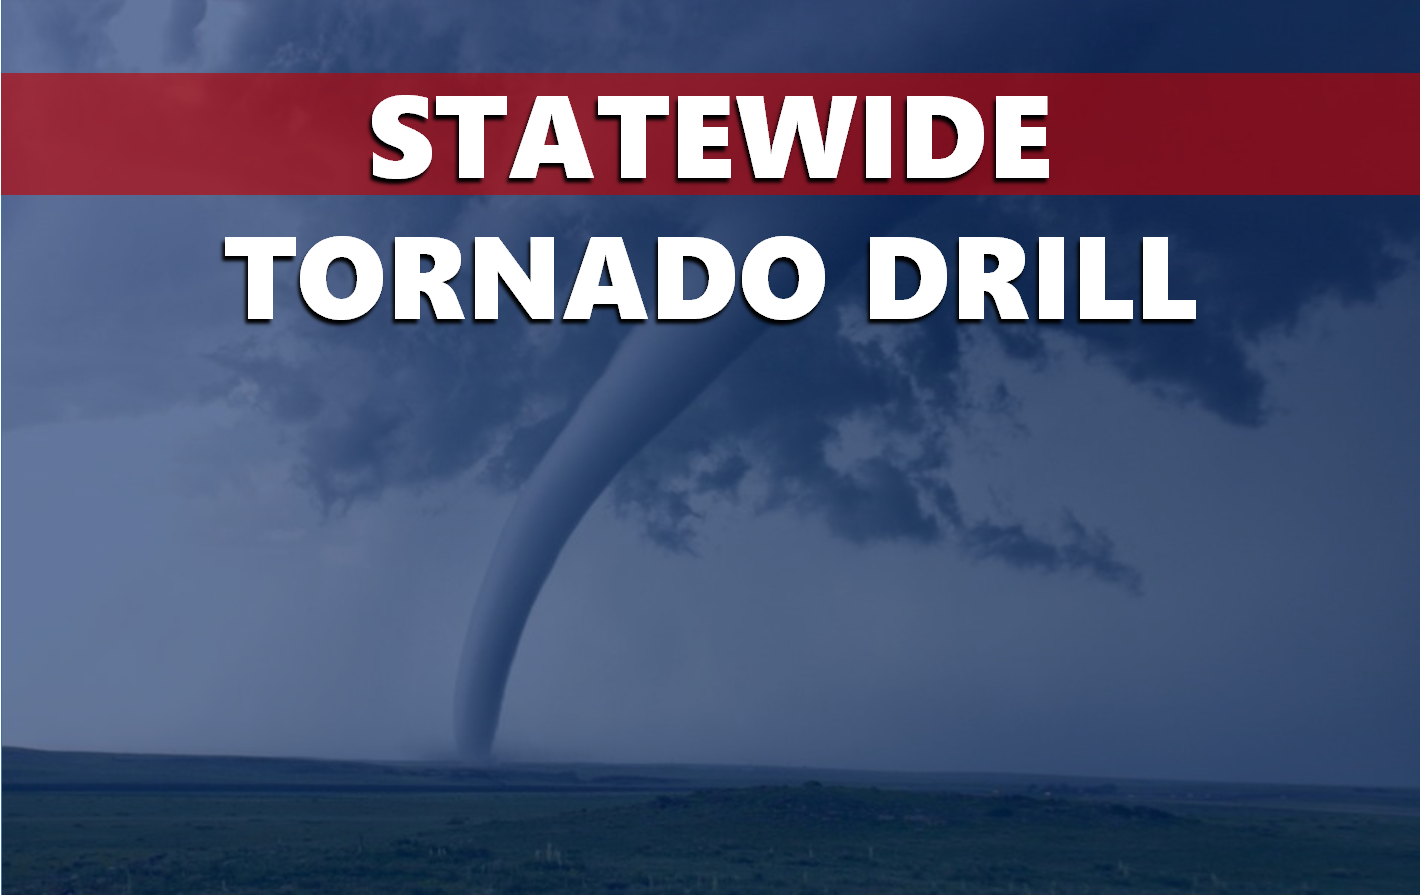 Statewide Tornado Drill Will Take Place Tuesday at 10:15 a.m.